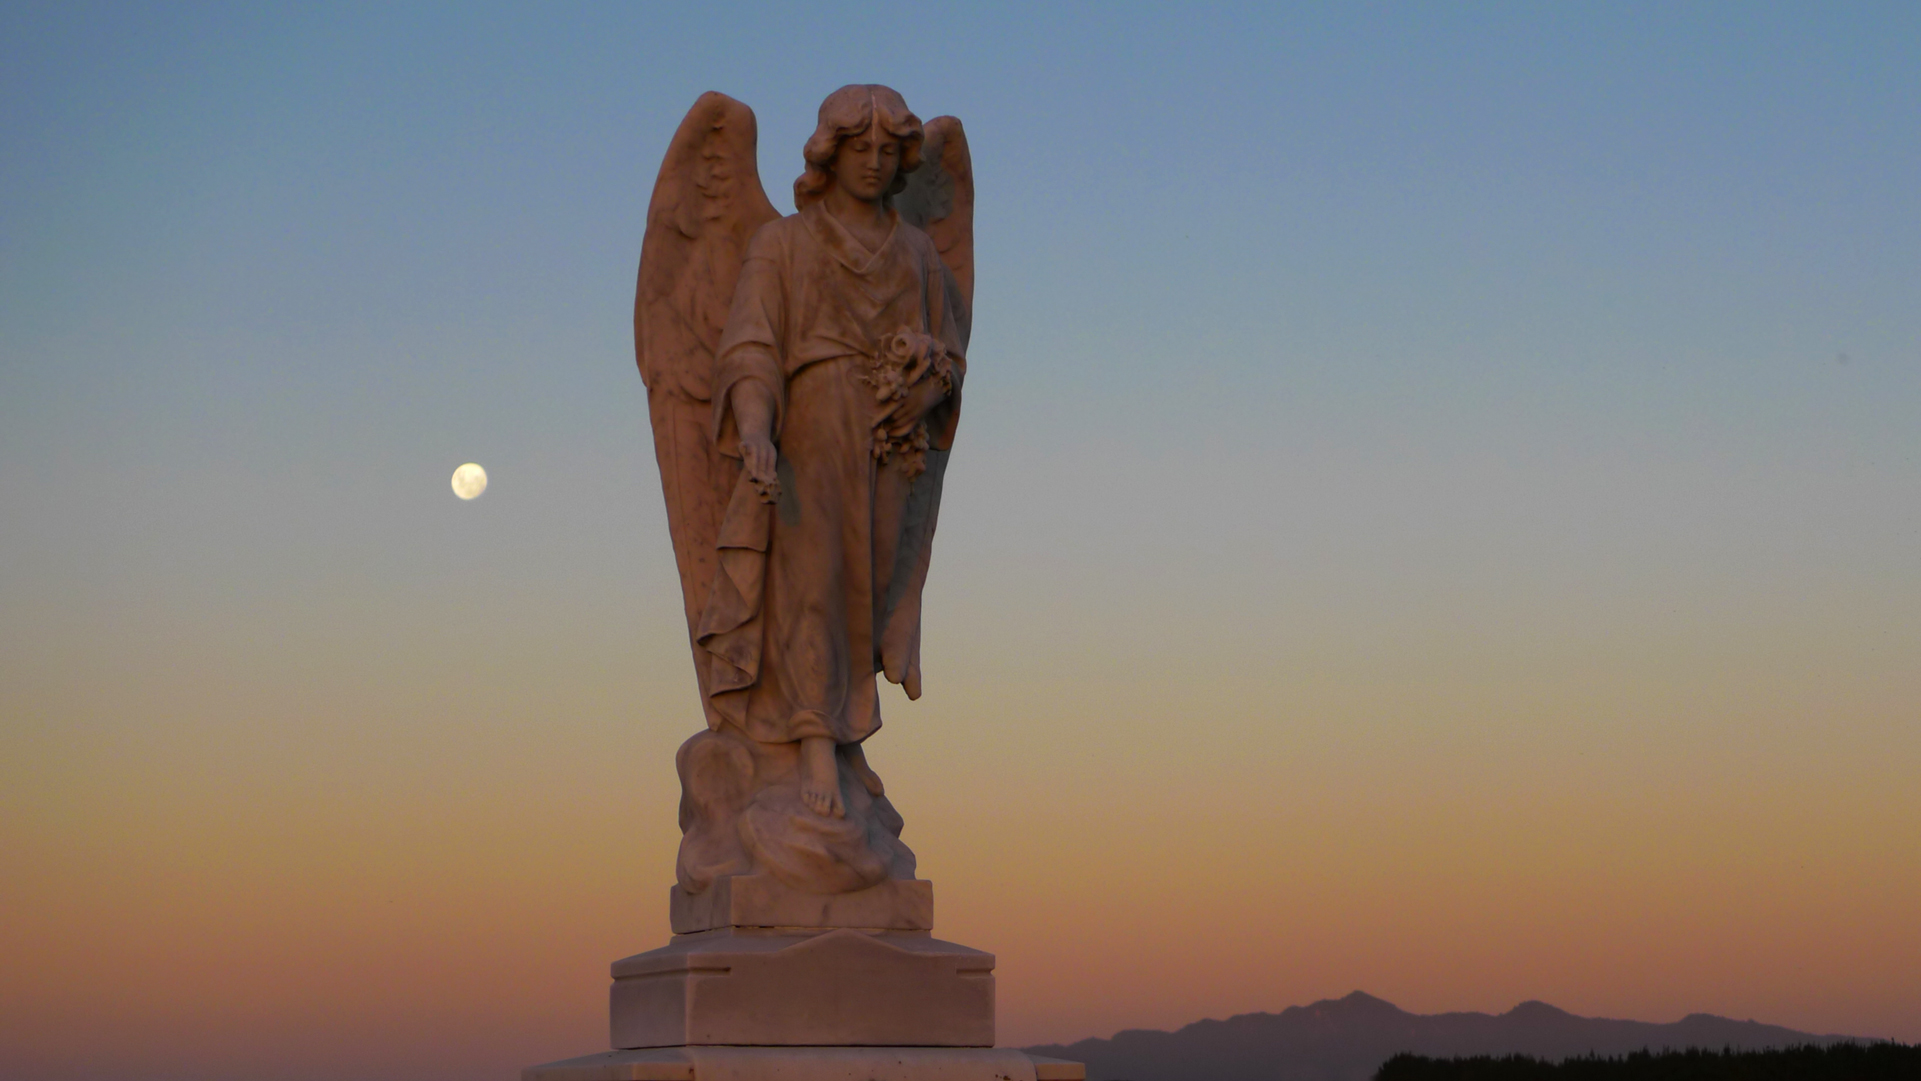 2-28-1128 Moonrise angel